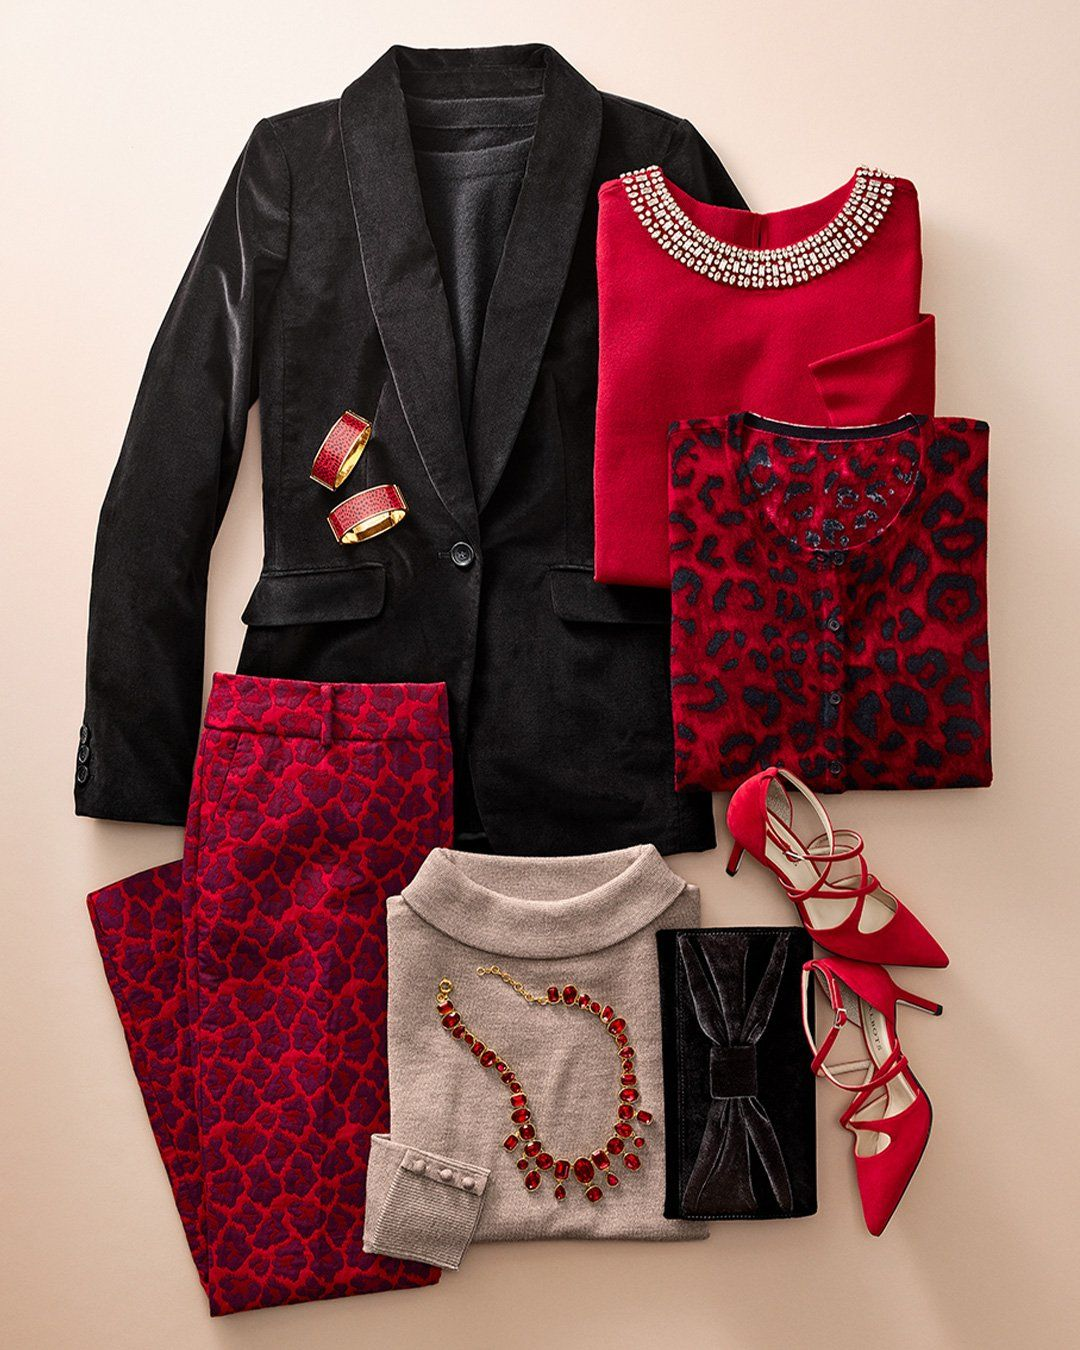 Pops Of Red Get In The Holiday Spirit Talbots Winter Outfits Autumn Winter Fashion Autumn Fashion Winter Outfits [ 1350 x 1080 Pixel ]